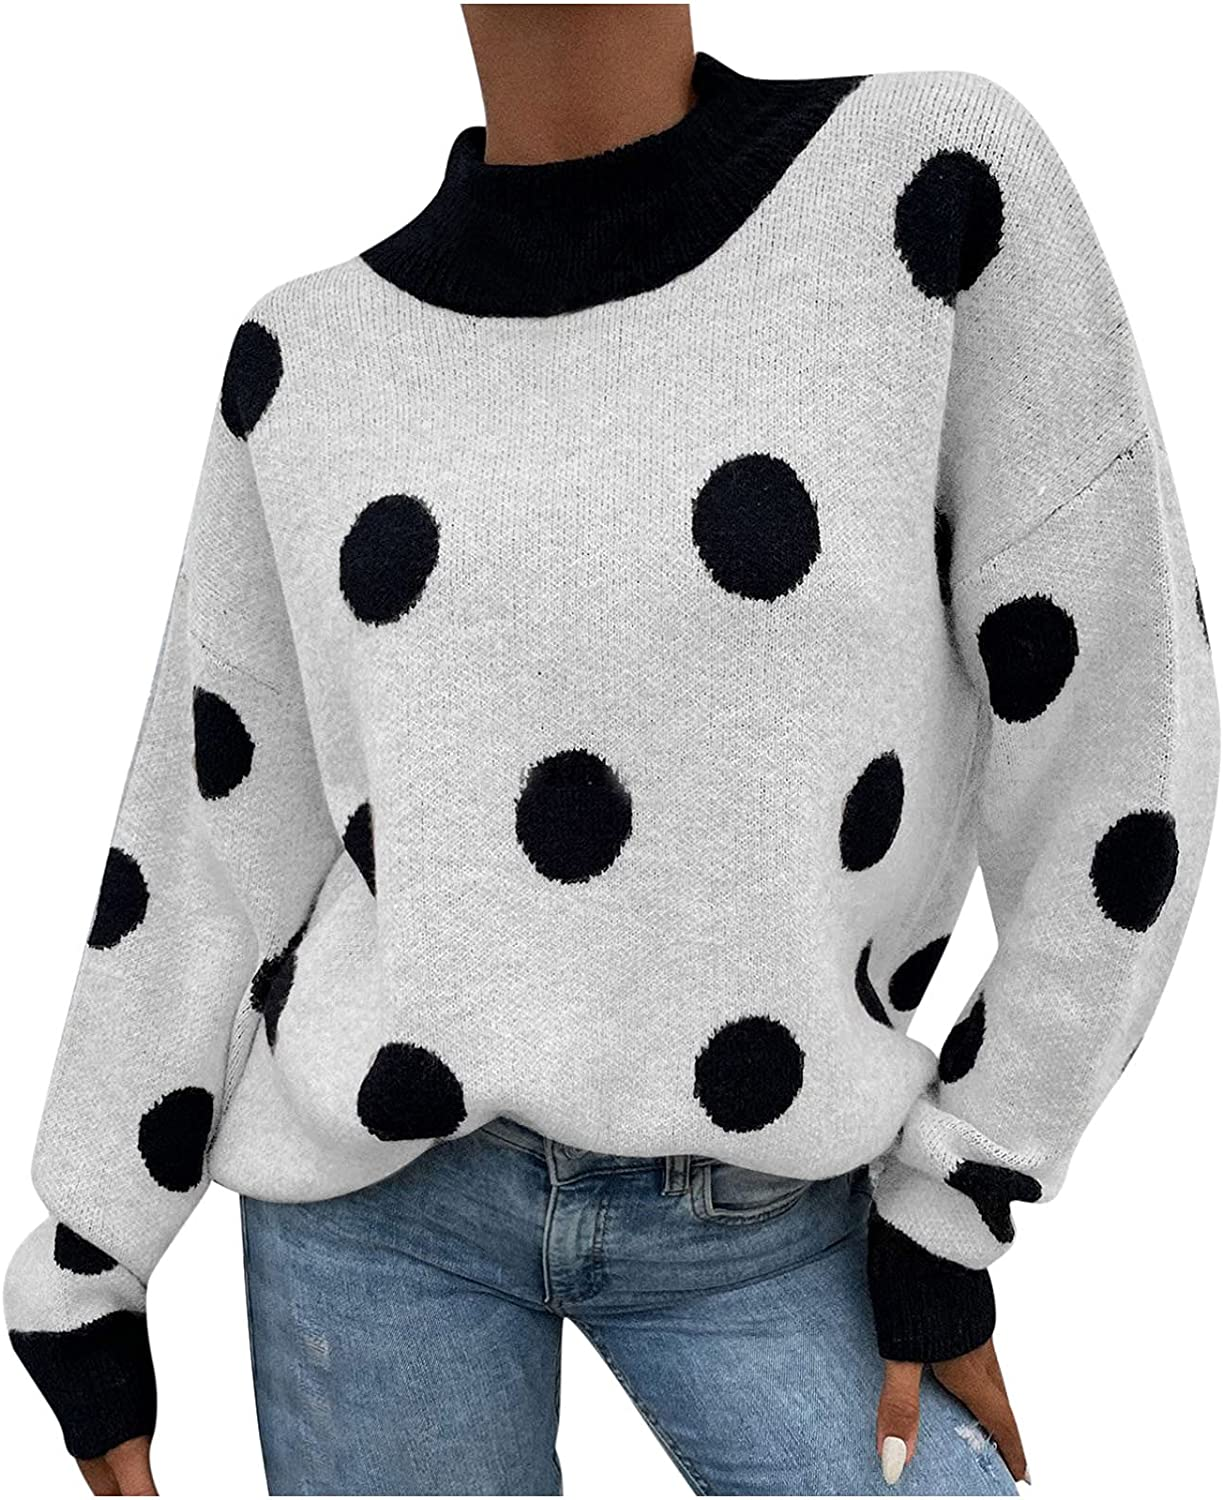 Womens Sweaters Fall,Womens Tops O-Neck Polka Dot Pullover Knit T-Shirt Loose Long-Sleeve Sexy Ladies Comfy Plus Size Blouses